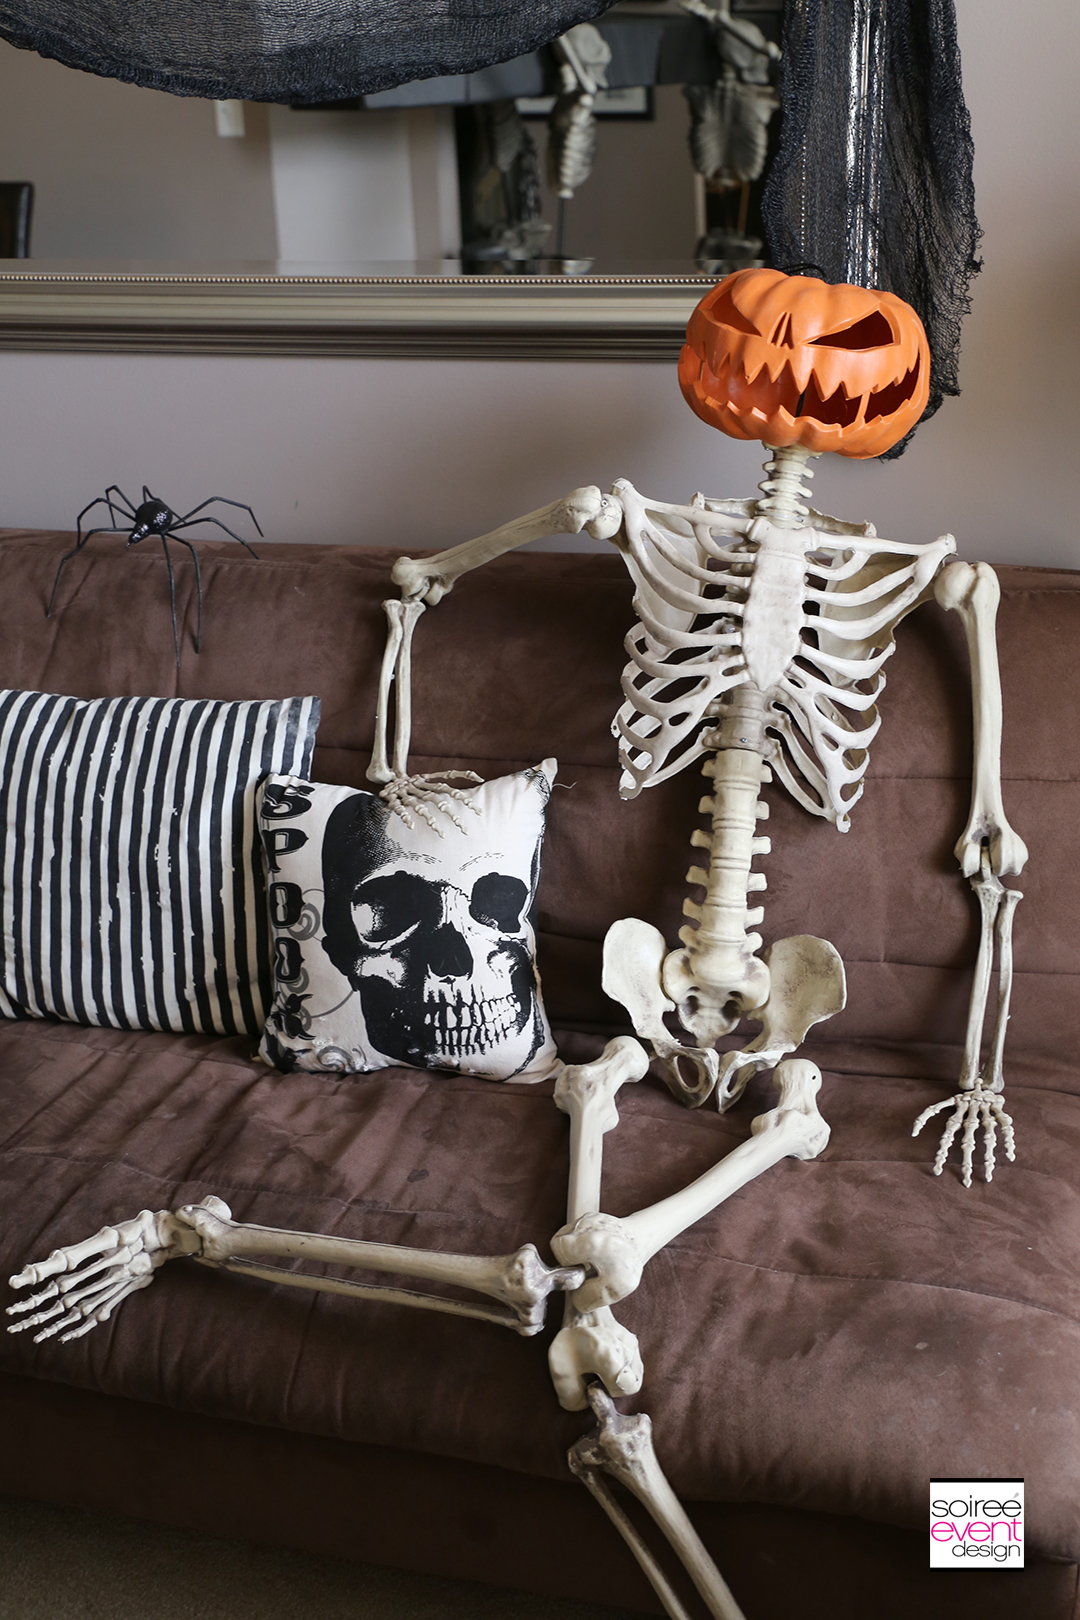 Vintage Halloween Decorating Ideas - Pillows